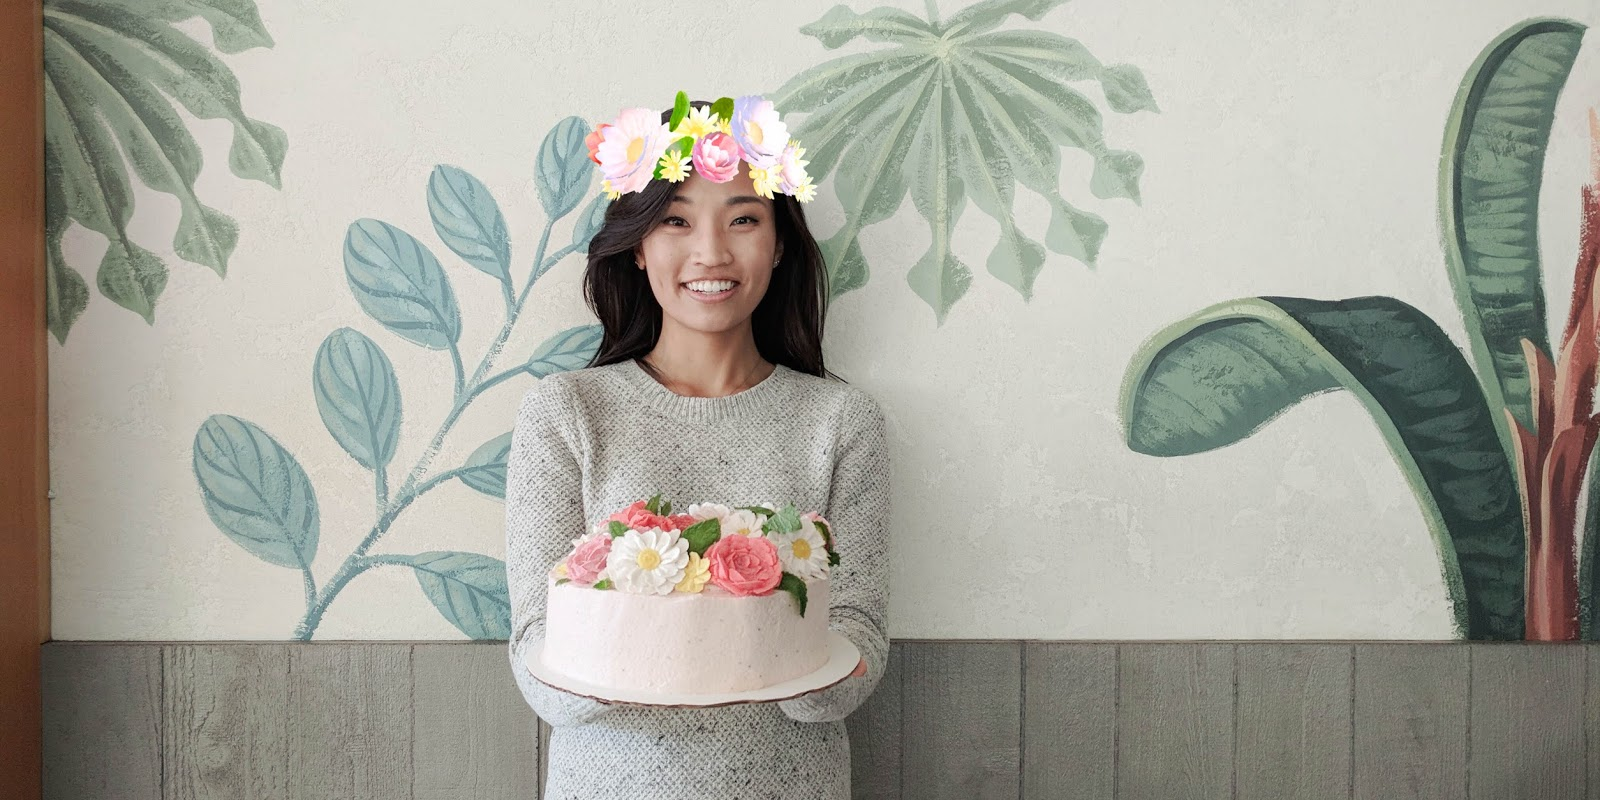 Snapchat flower crown strawberry cake for karens birthday the jen tldr inspired by snapchats flower crown filter i baked a strawberry cake with hand piped bean paste flowers for my friend karens birthday read on for izmirmasajfo